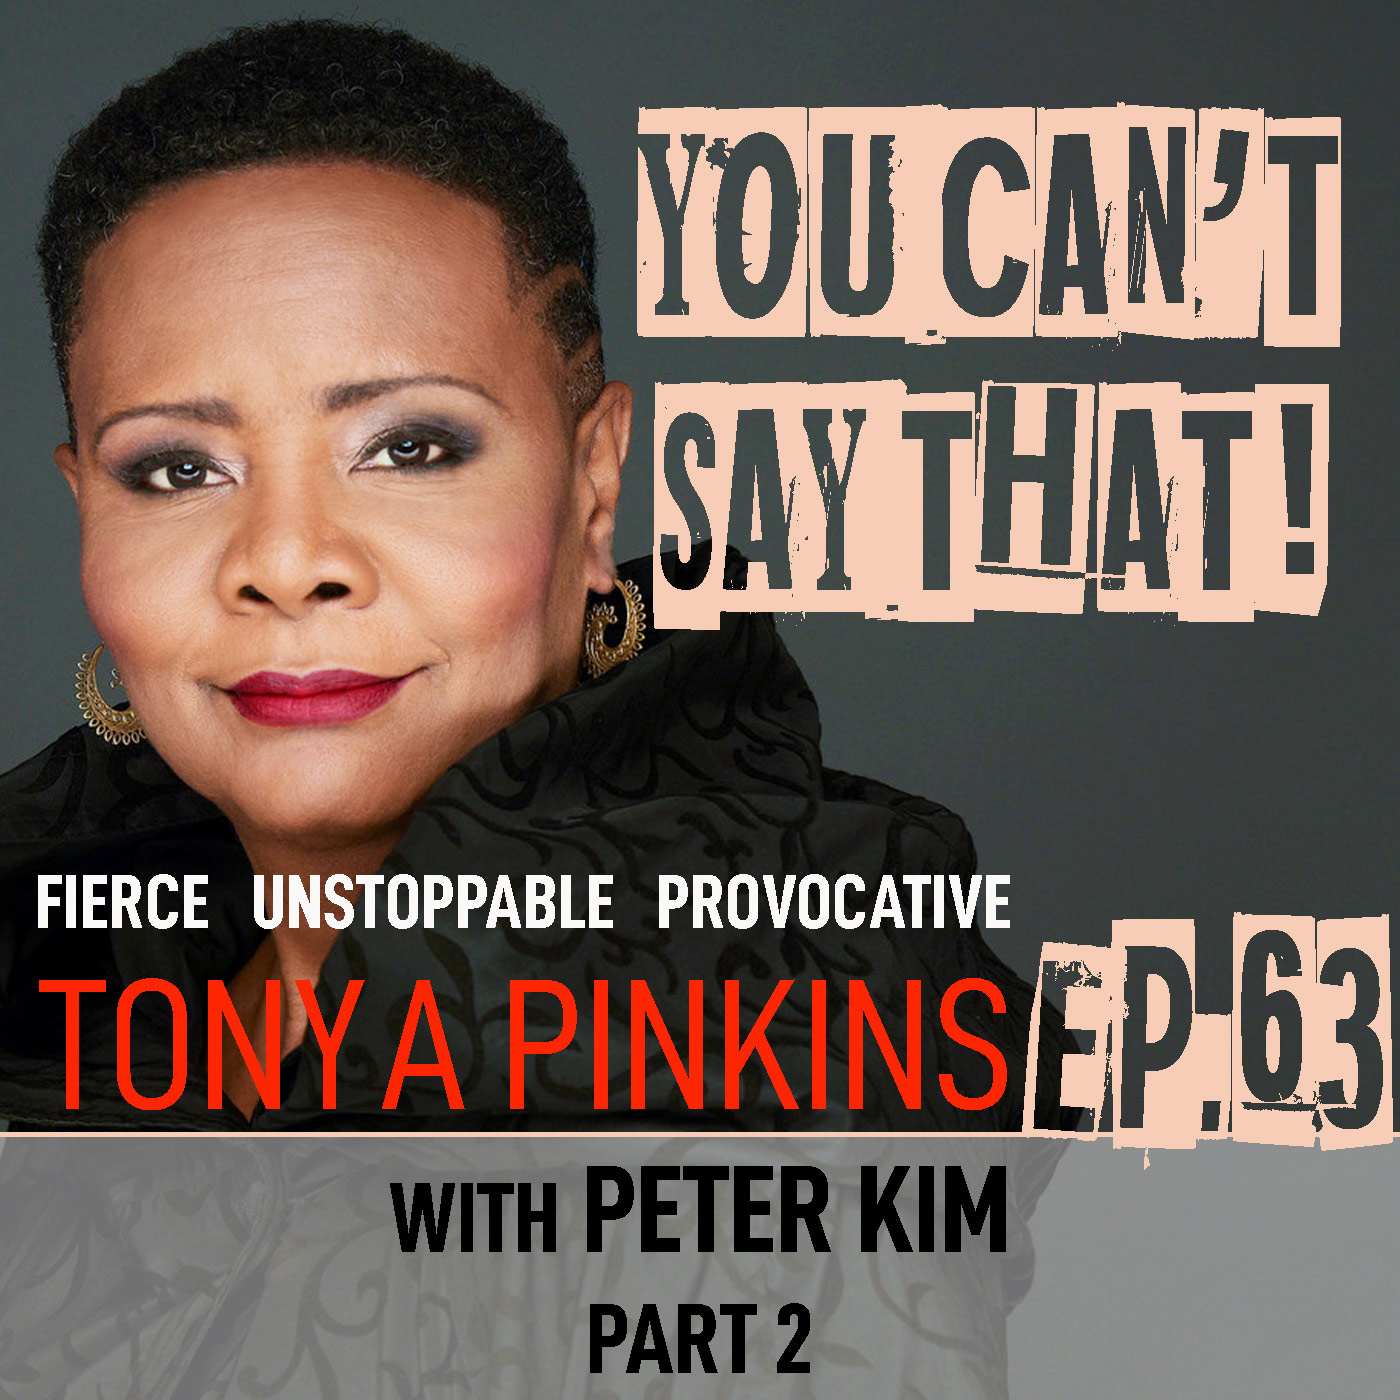 You Can't Say That Tonya Pinkins Ep63 - Peter Kim (Part 2)